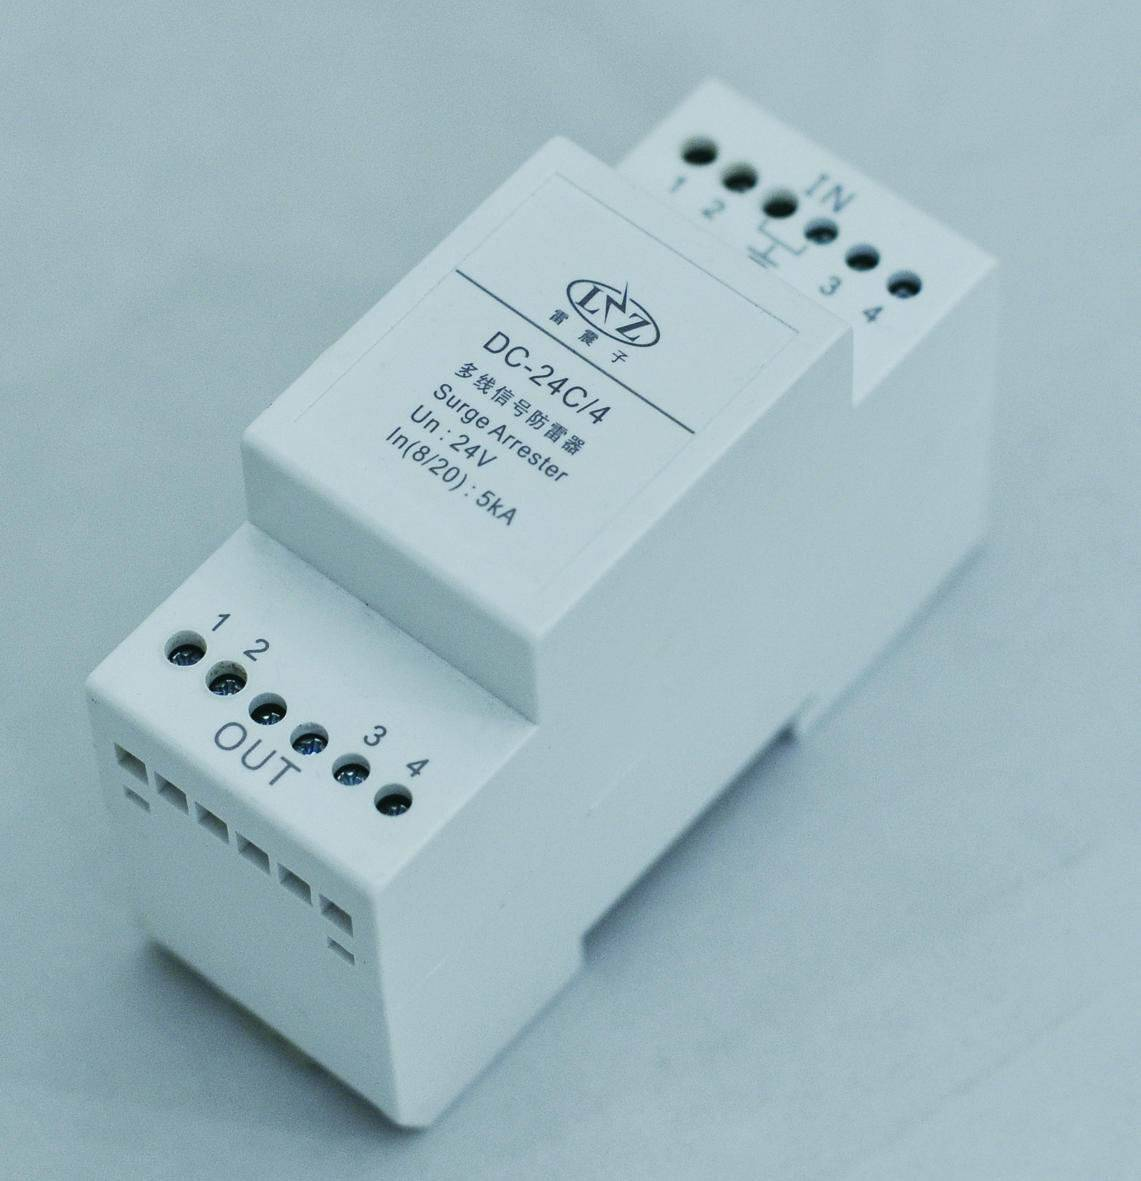 DC-C/4 series 4- wire control signal surge protection device